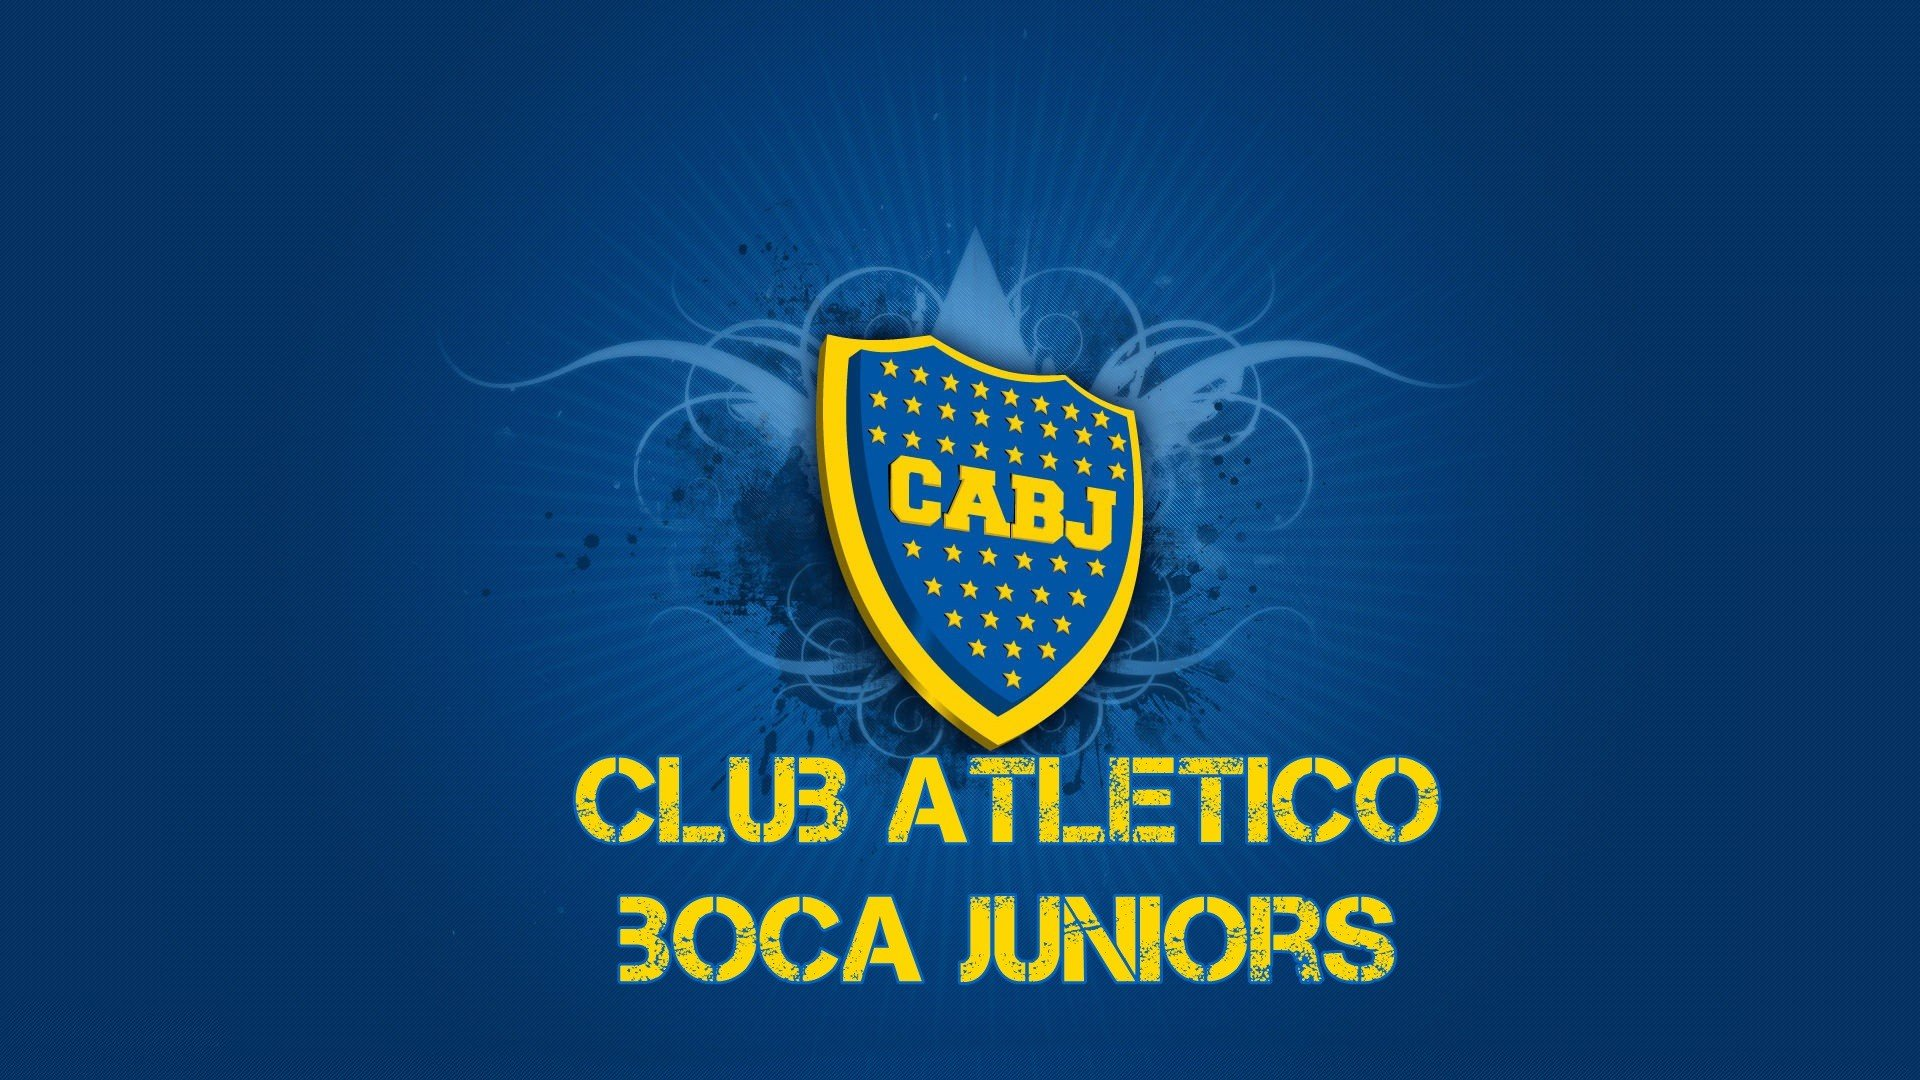 Boca Juniors Football Team Logo HD Wallpaper   Wallpaper Stream 1920x1080